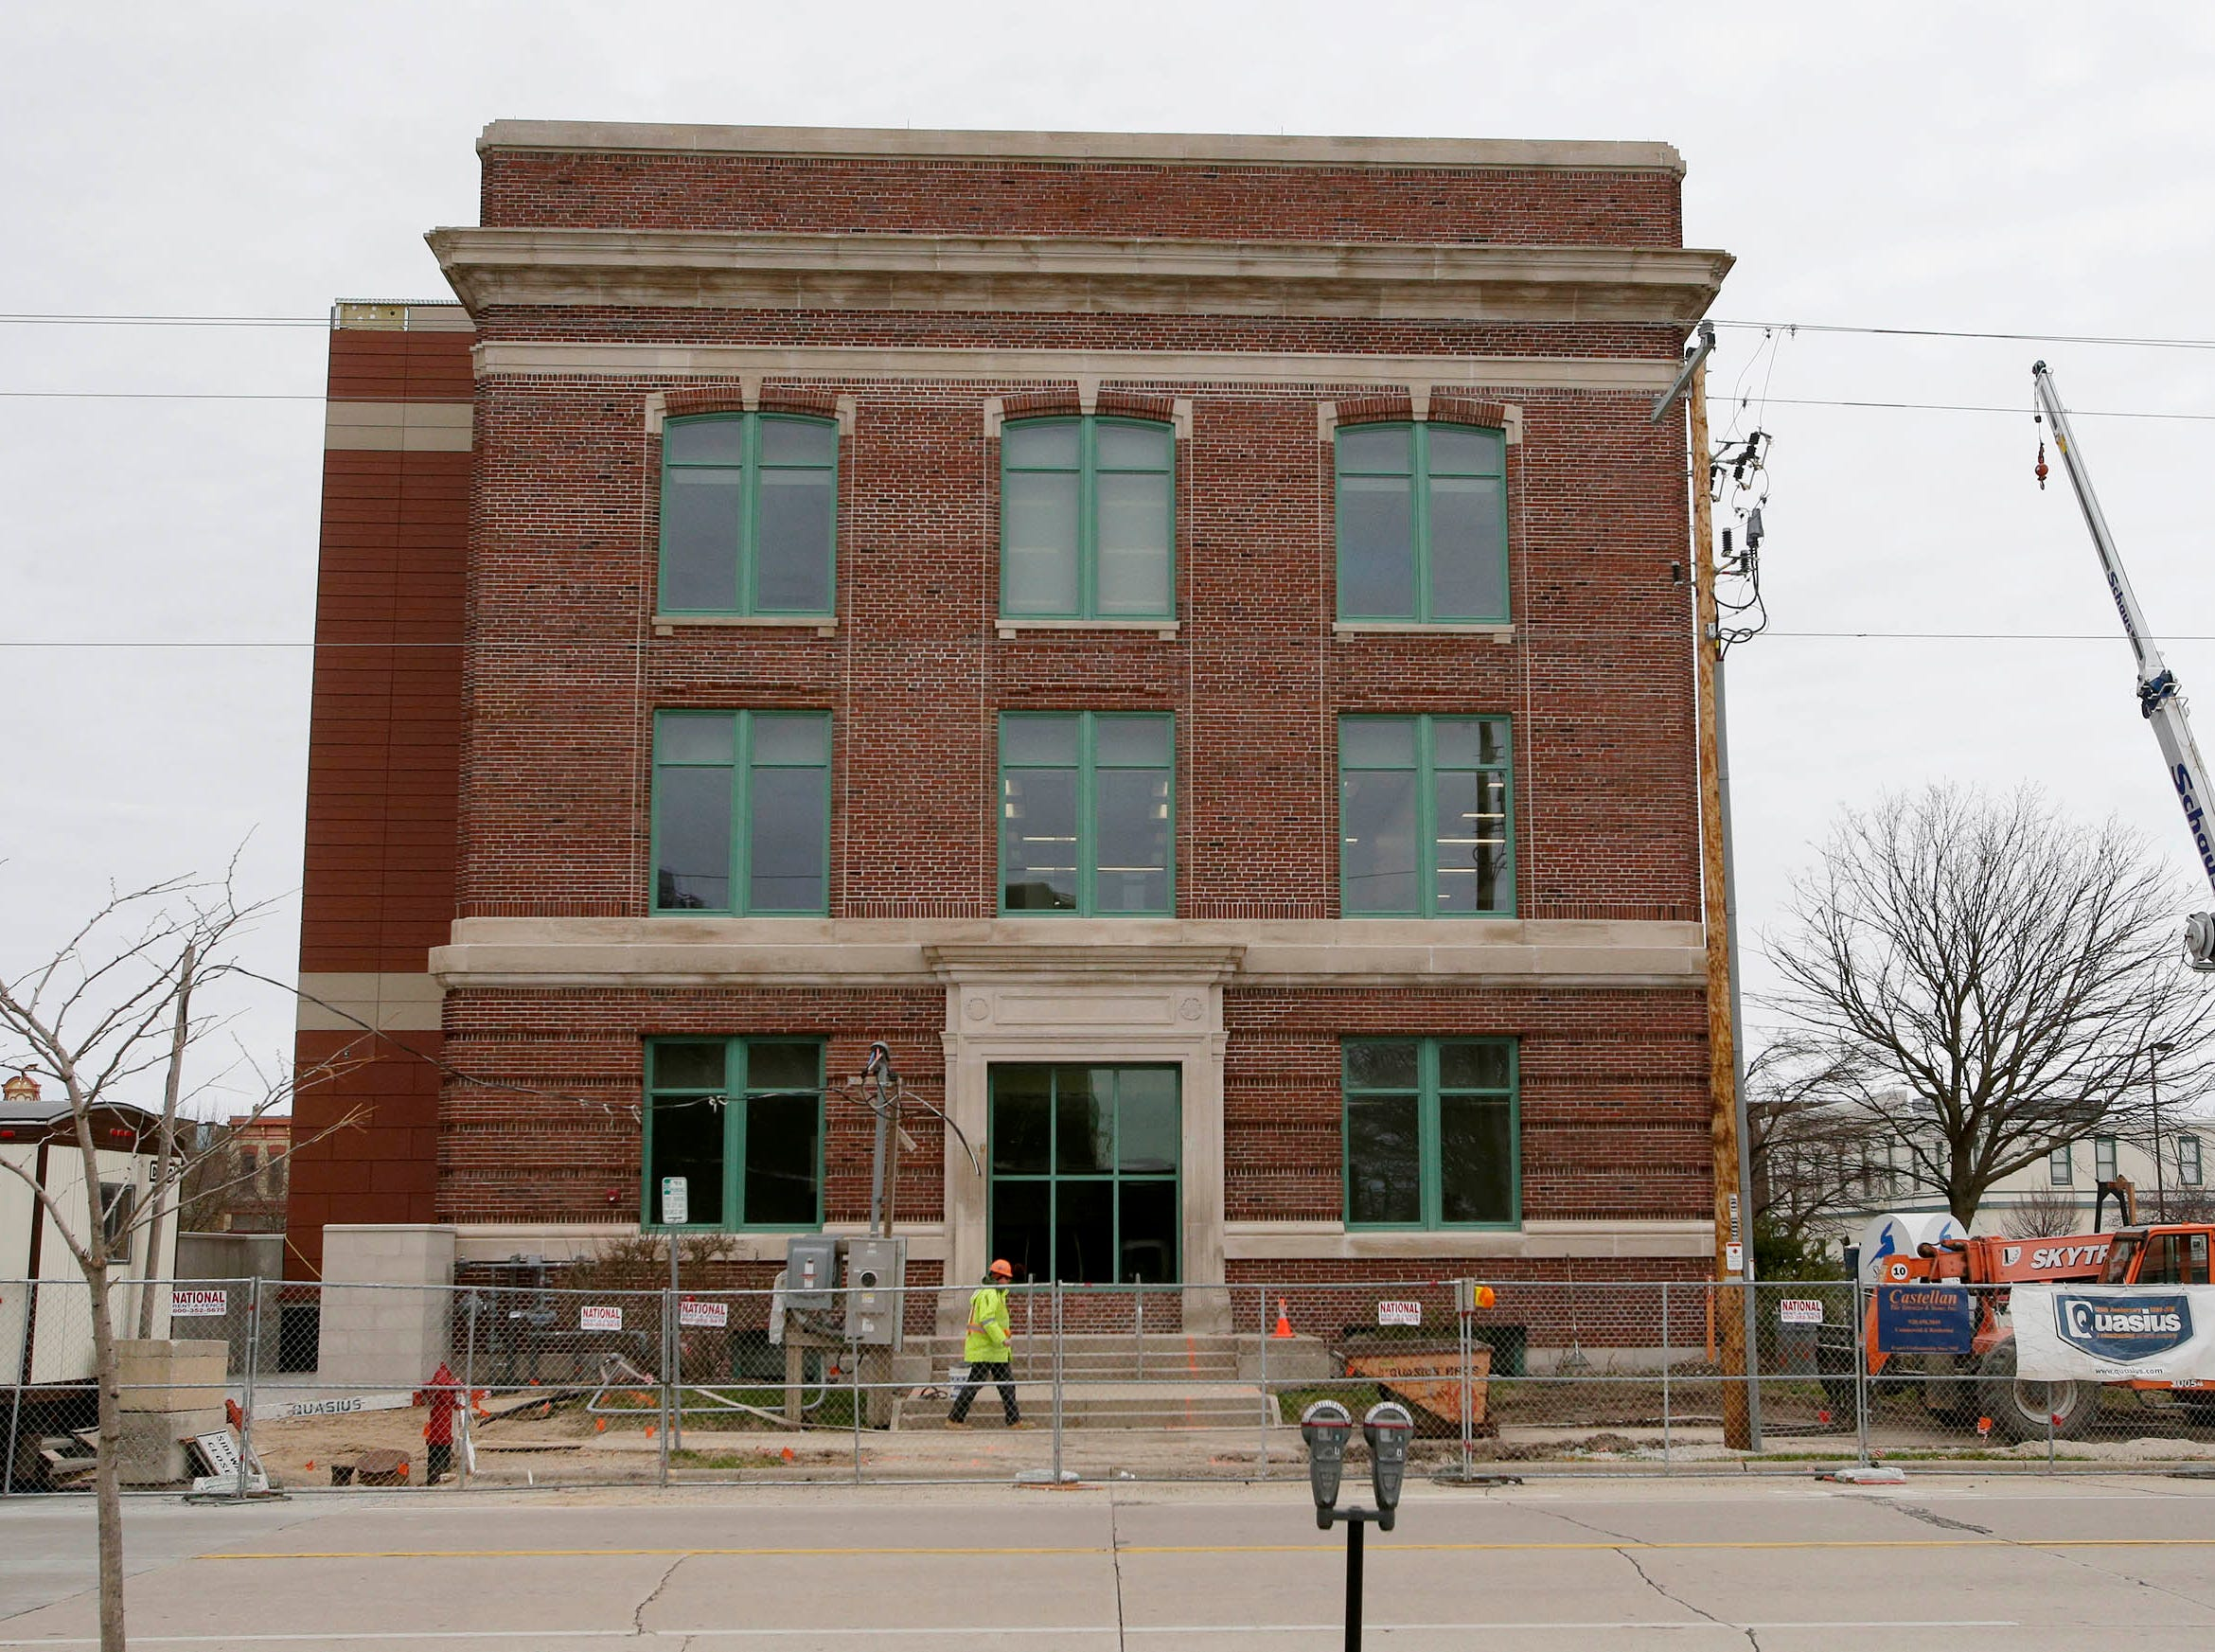 The west side of Sheboygan City Hall as seen, Tuesday, May 7, 2019, in Sheboygan, Wis. The facility is going through a complete renovation.